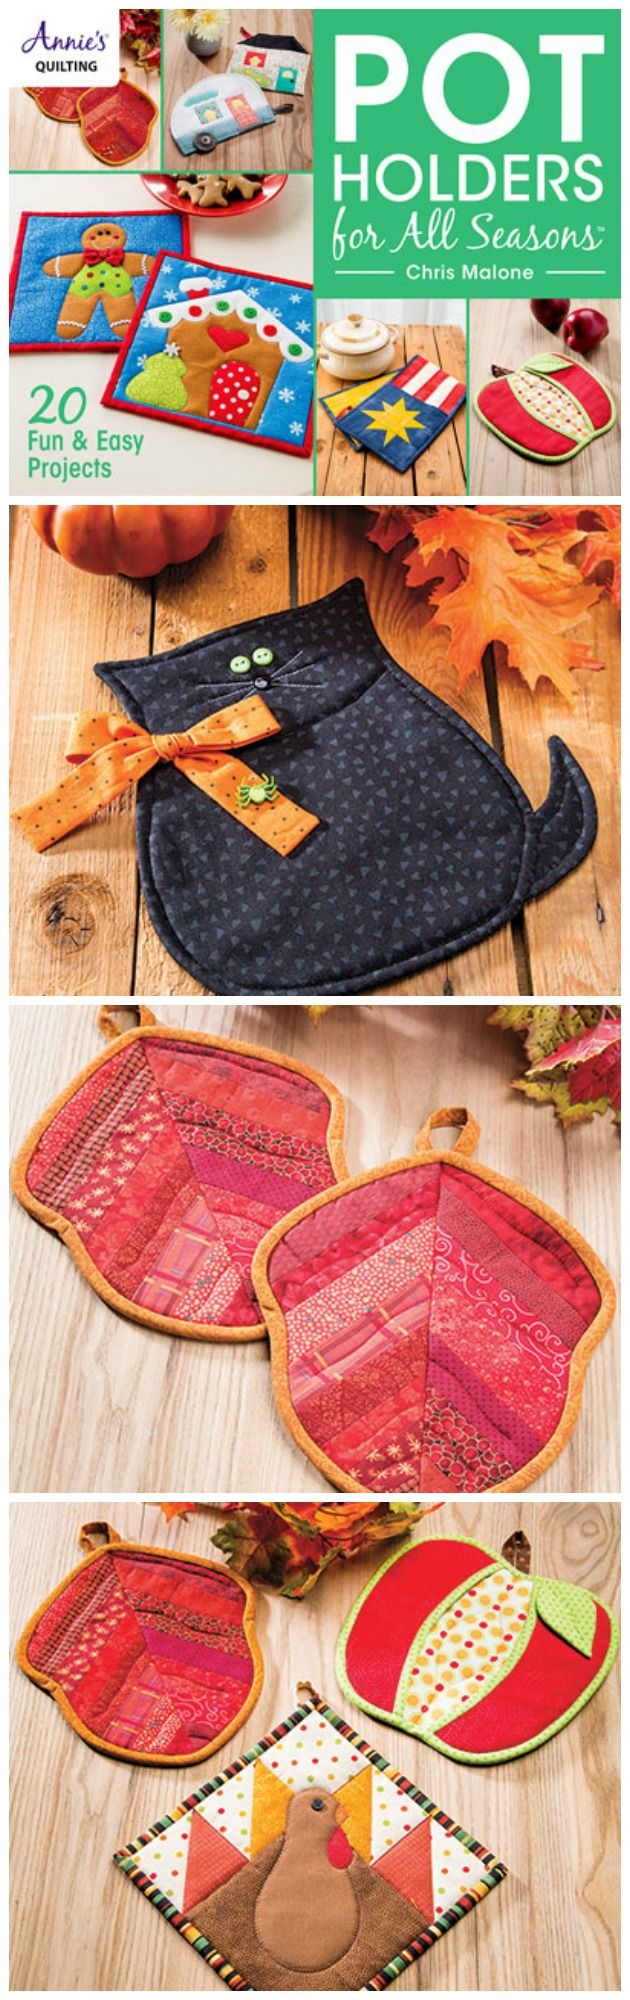 Fall, Halloween and Thanksgiving potholder sewing patterns, from the Pot Holders for All Seasons book.